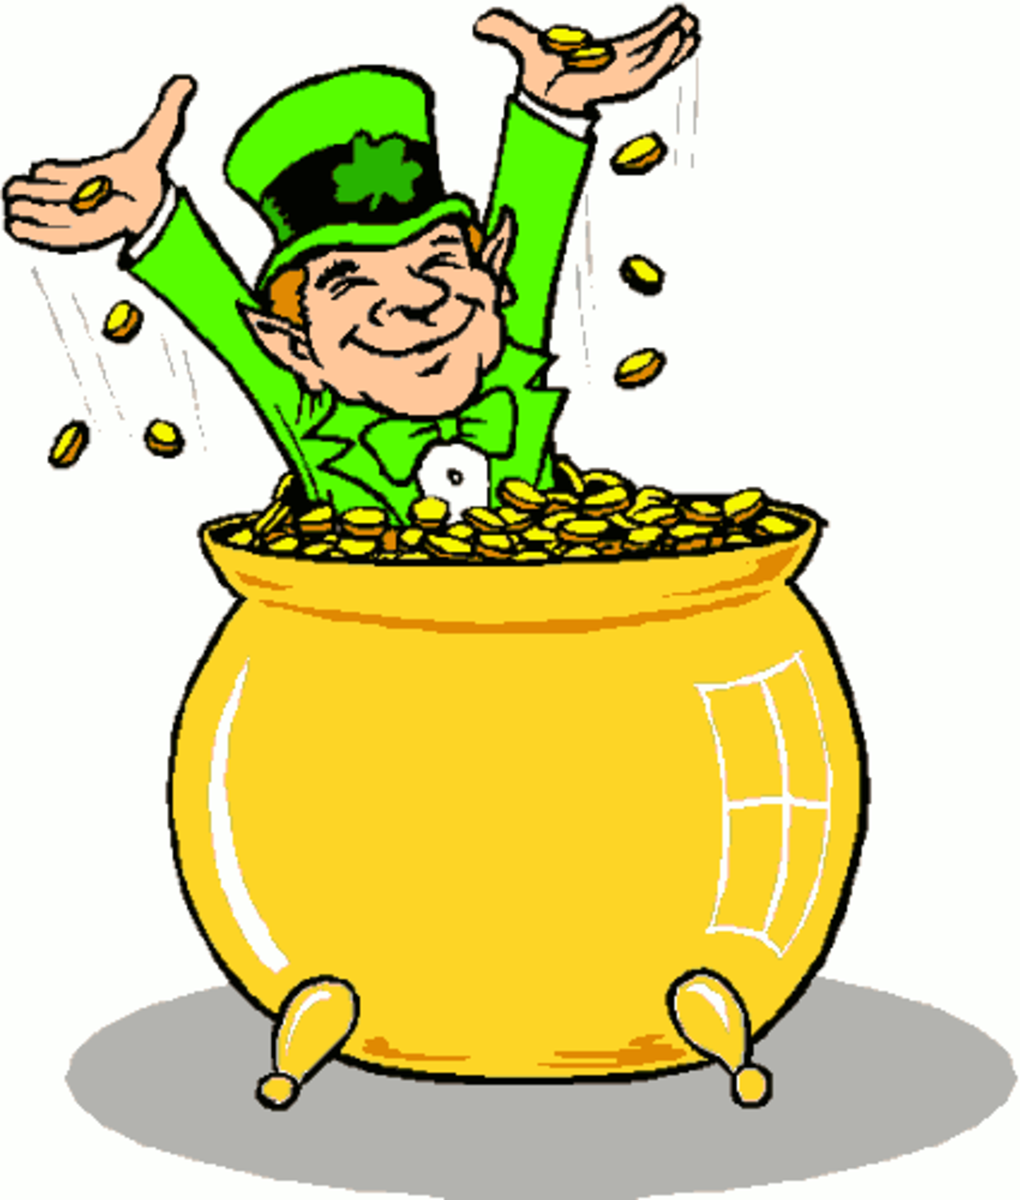 Smiling Leprechaun inside of Pot of Gold